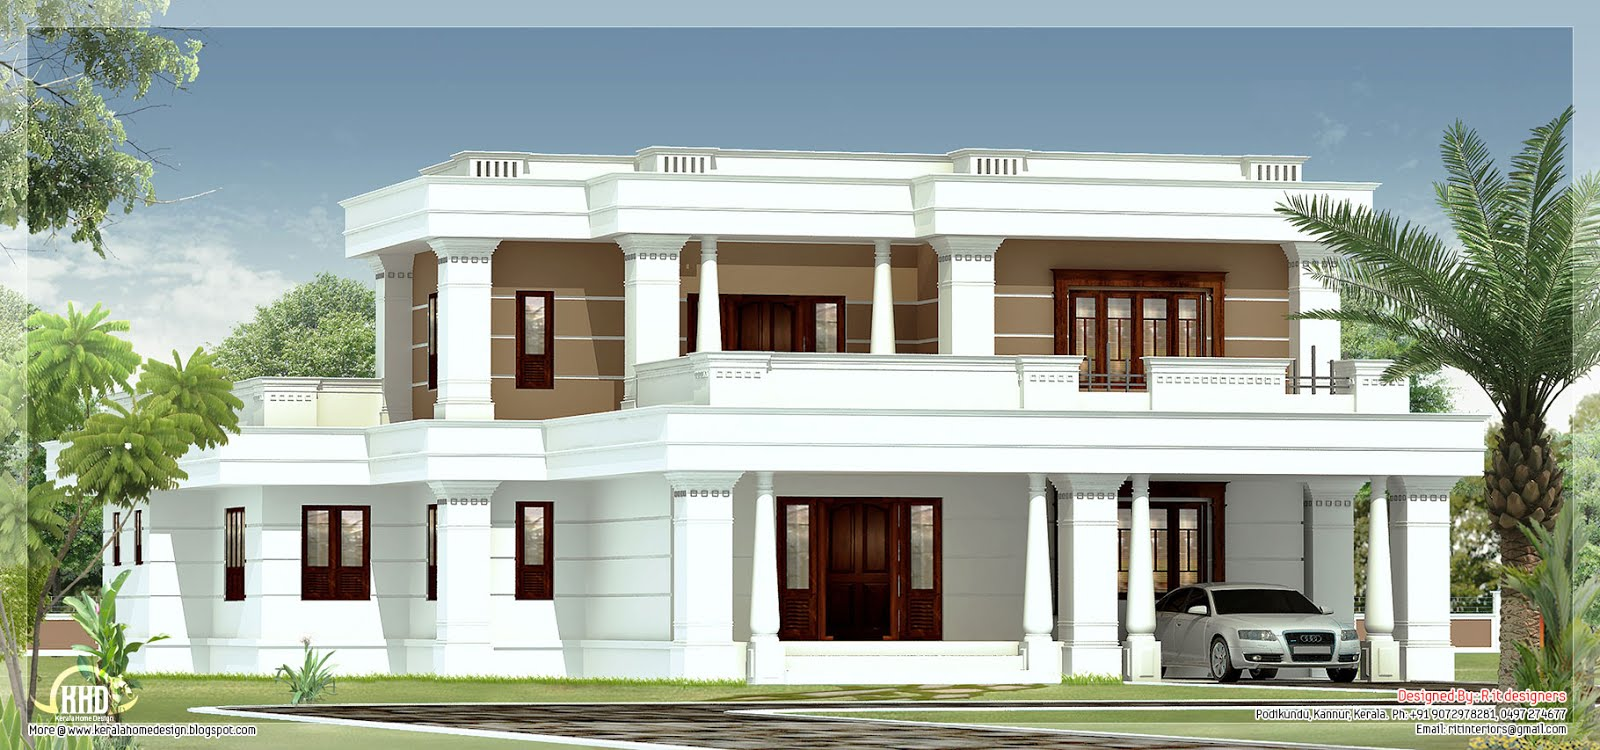 4 bedroom flat roof villa kerala home design and floor plans for Villas designs photos